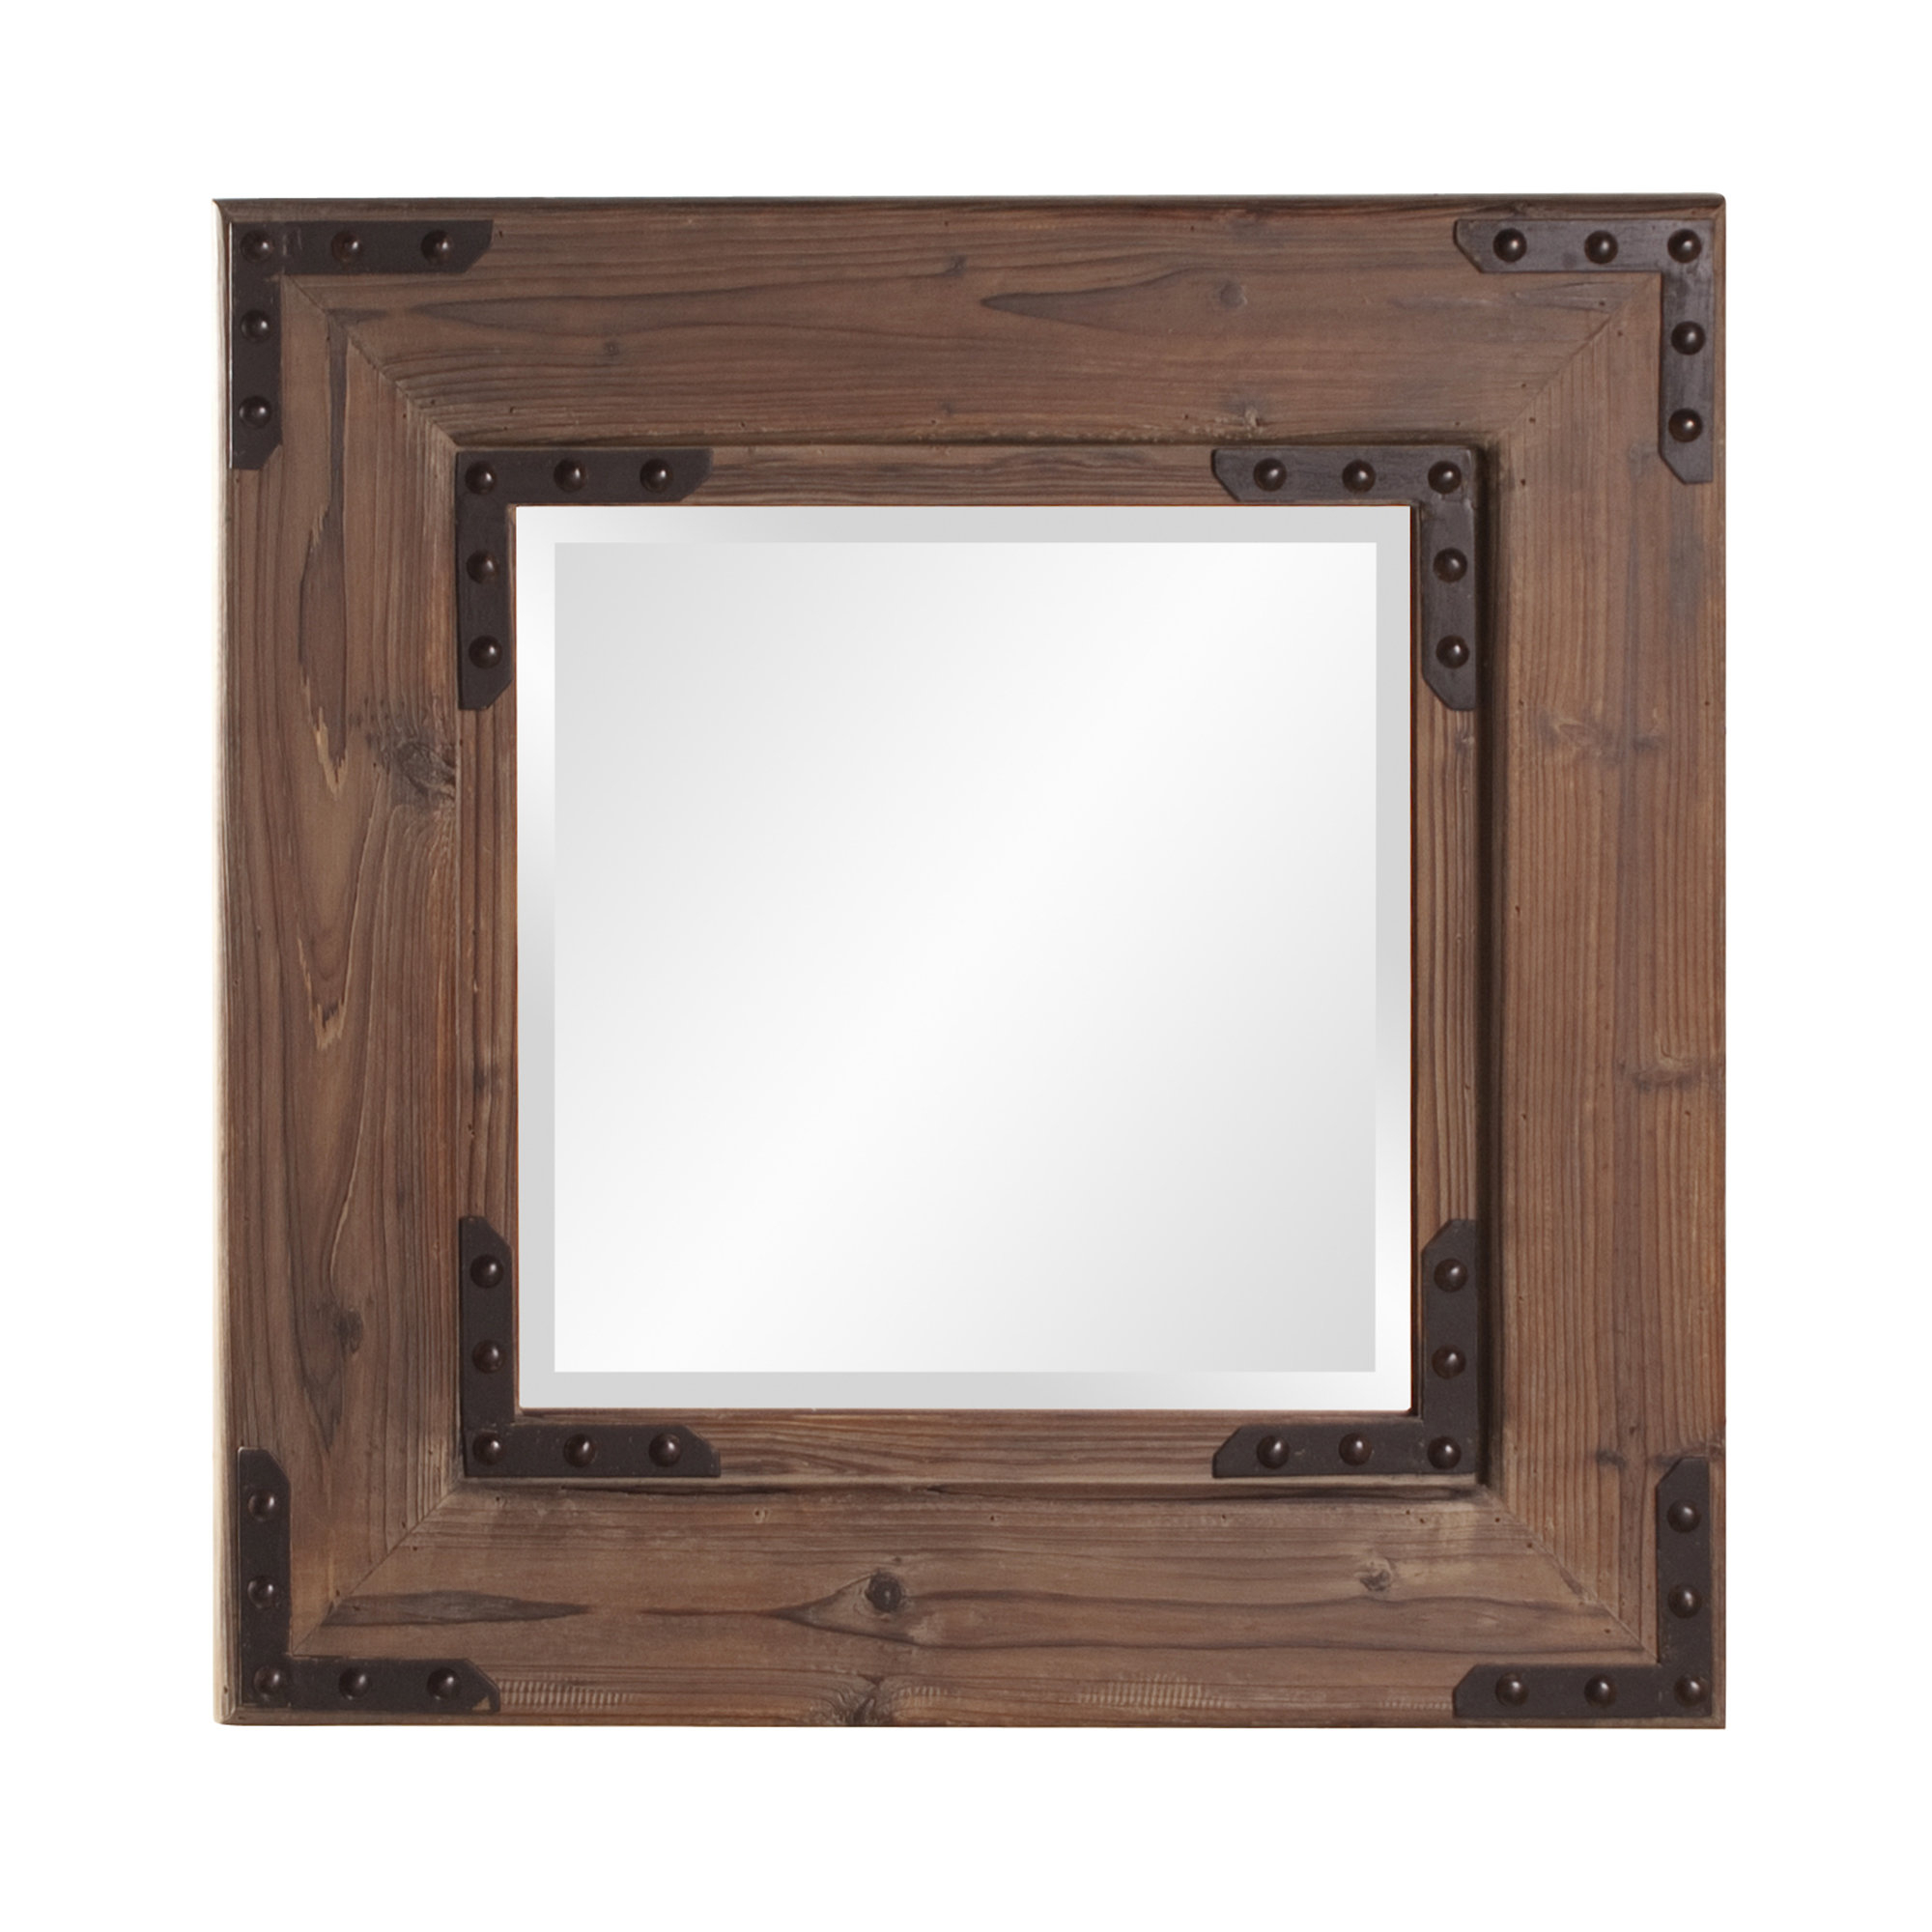 Tifton Traditional Beveled Accent Mirrors Intended For 2020 Birch Lane™ Heritage Tifton Traditional Beveled Accent Mirror (View 3 of 20)